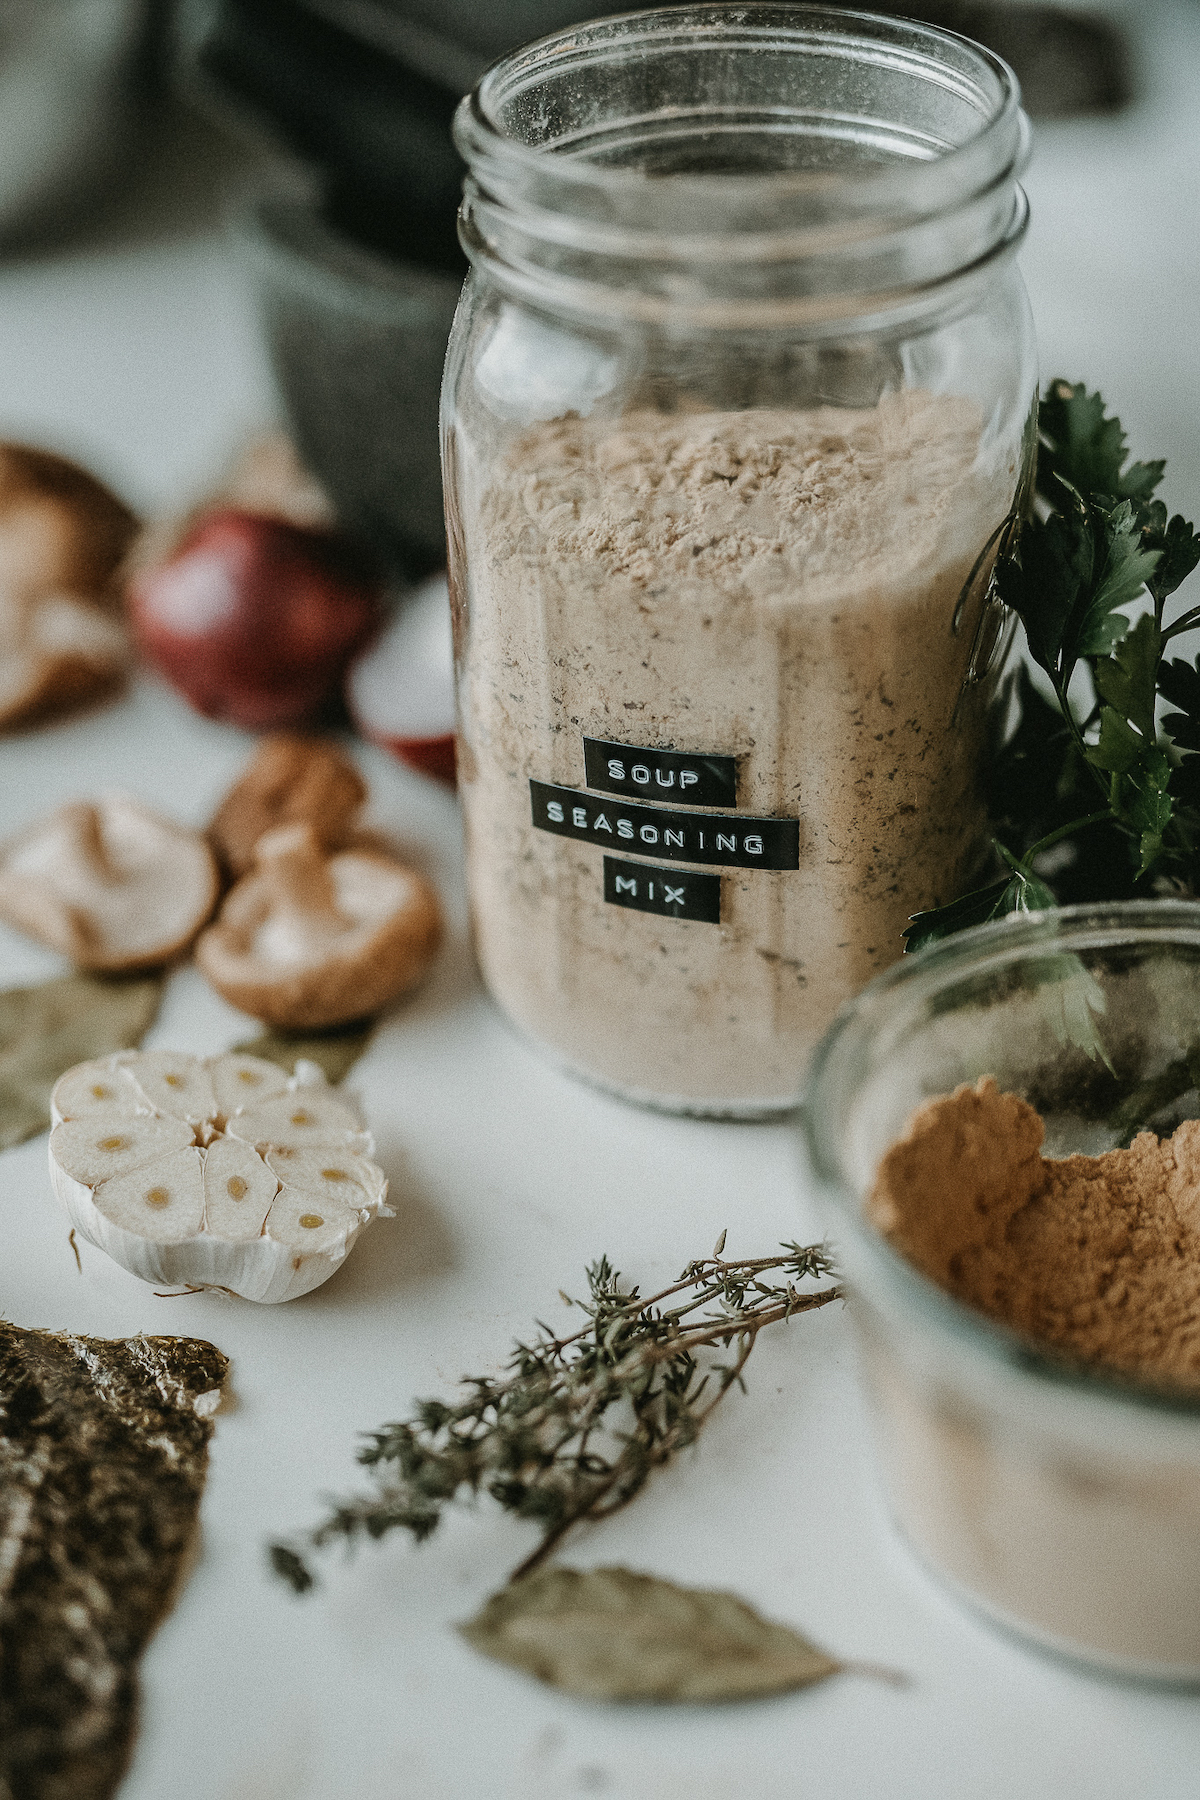 Healthy Weight and Nutrition - Unit 9 Advanced Herbal Course nourishing herbal soup seasoning mix8 SM credit @plantifultaste, HA Commercial Use